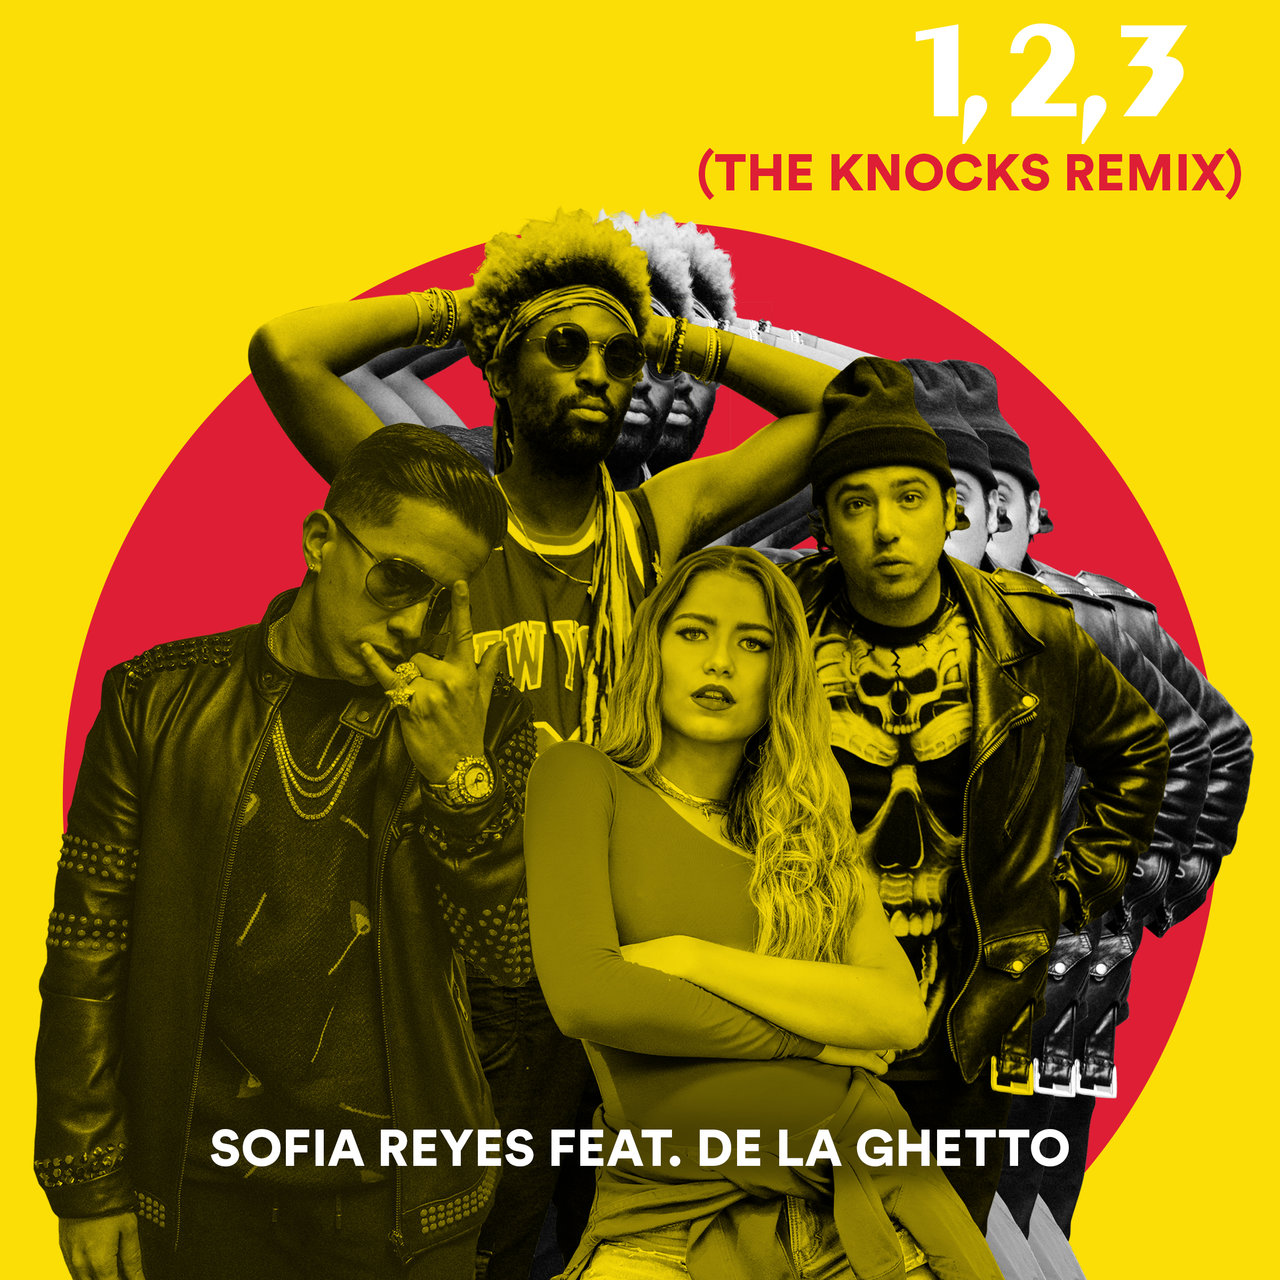 1, 2, 3 (feat. De La Ghetto) [The Knocks Remix]